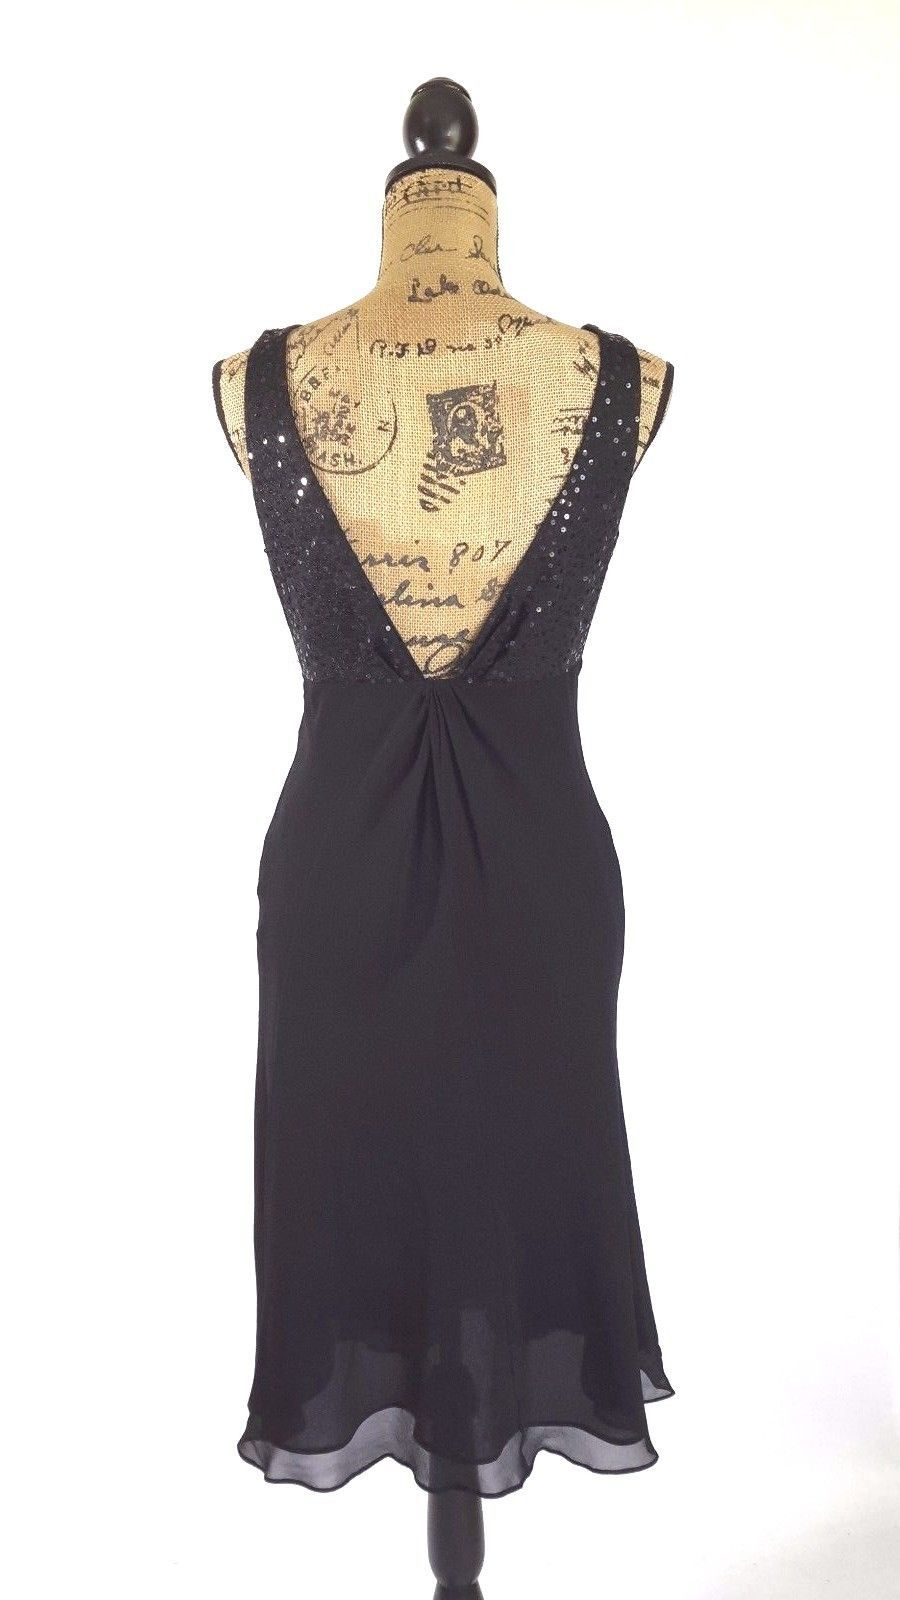 Anne Klein Dress 6 Med classic black 100% silk low back sequin top party LBD